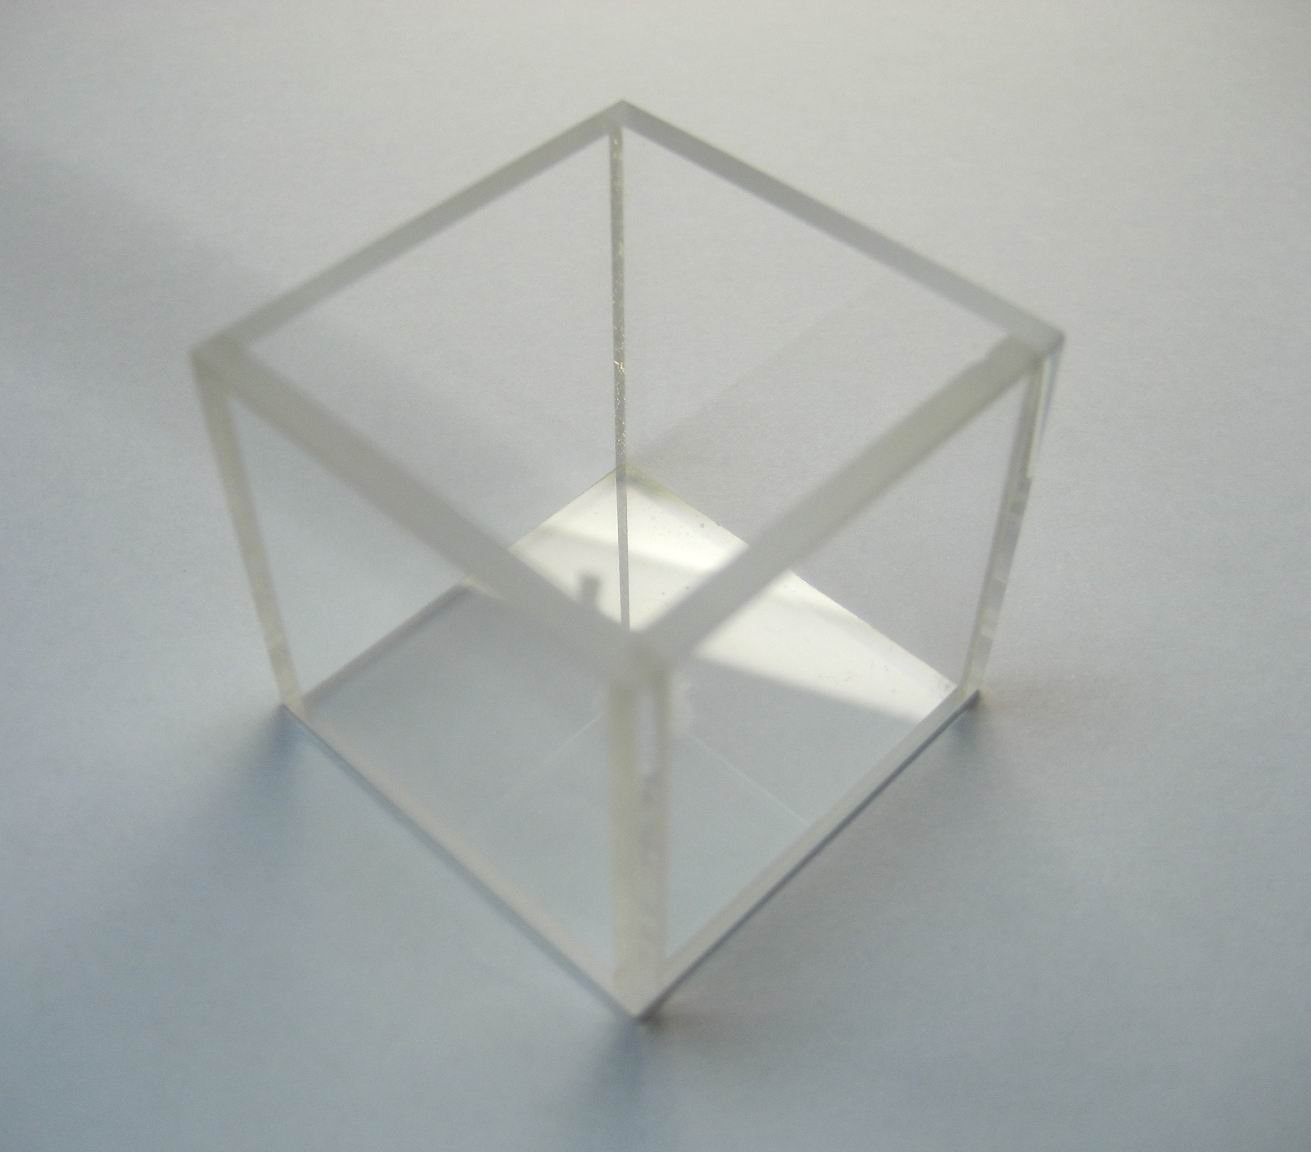 Customized Glass Fluorescence Cuvette,large Cuvette, Id:40mm X40 Mm X 40mm, Volume 56ml, Large Cell,large Cuvettes